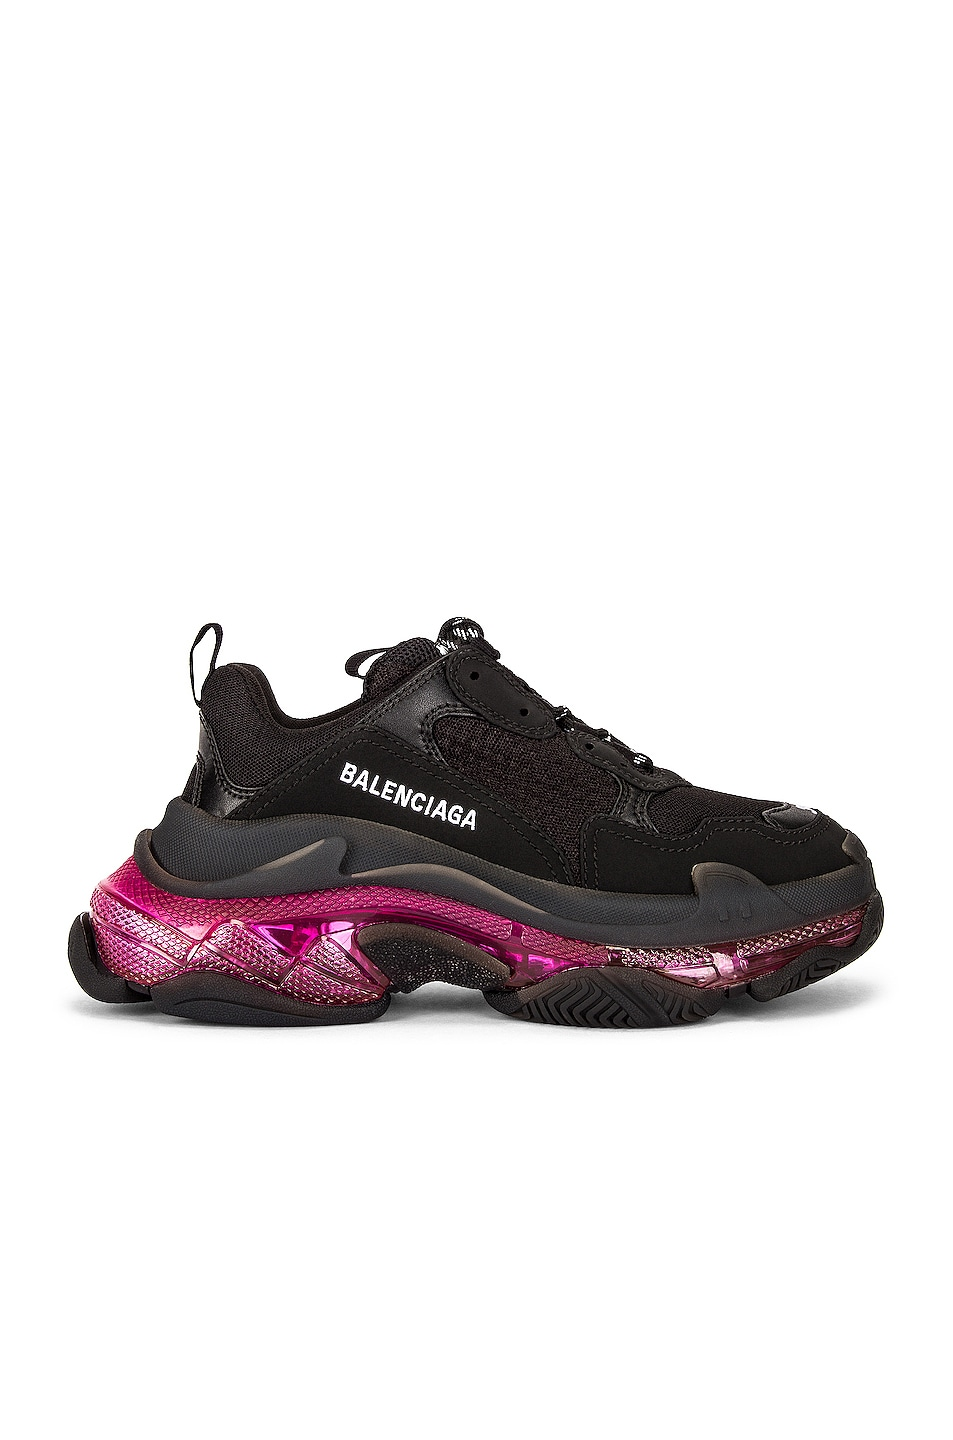 Image 1 of Balenciaga Triple S Clear Sole Sneakers in Black & Pink Neon